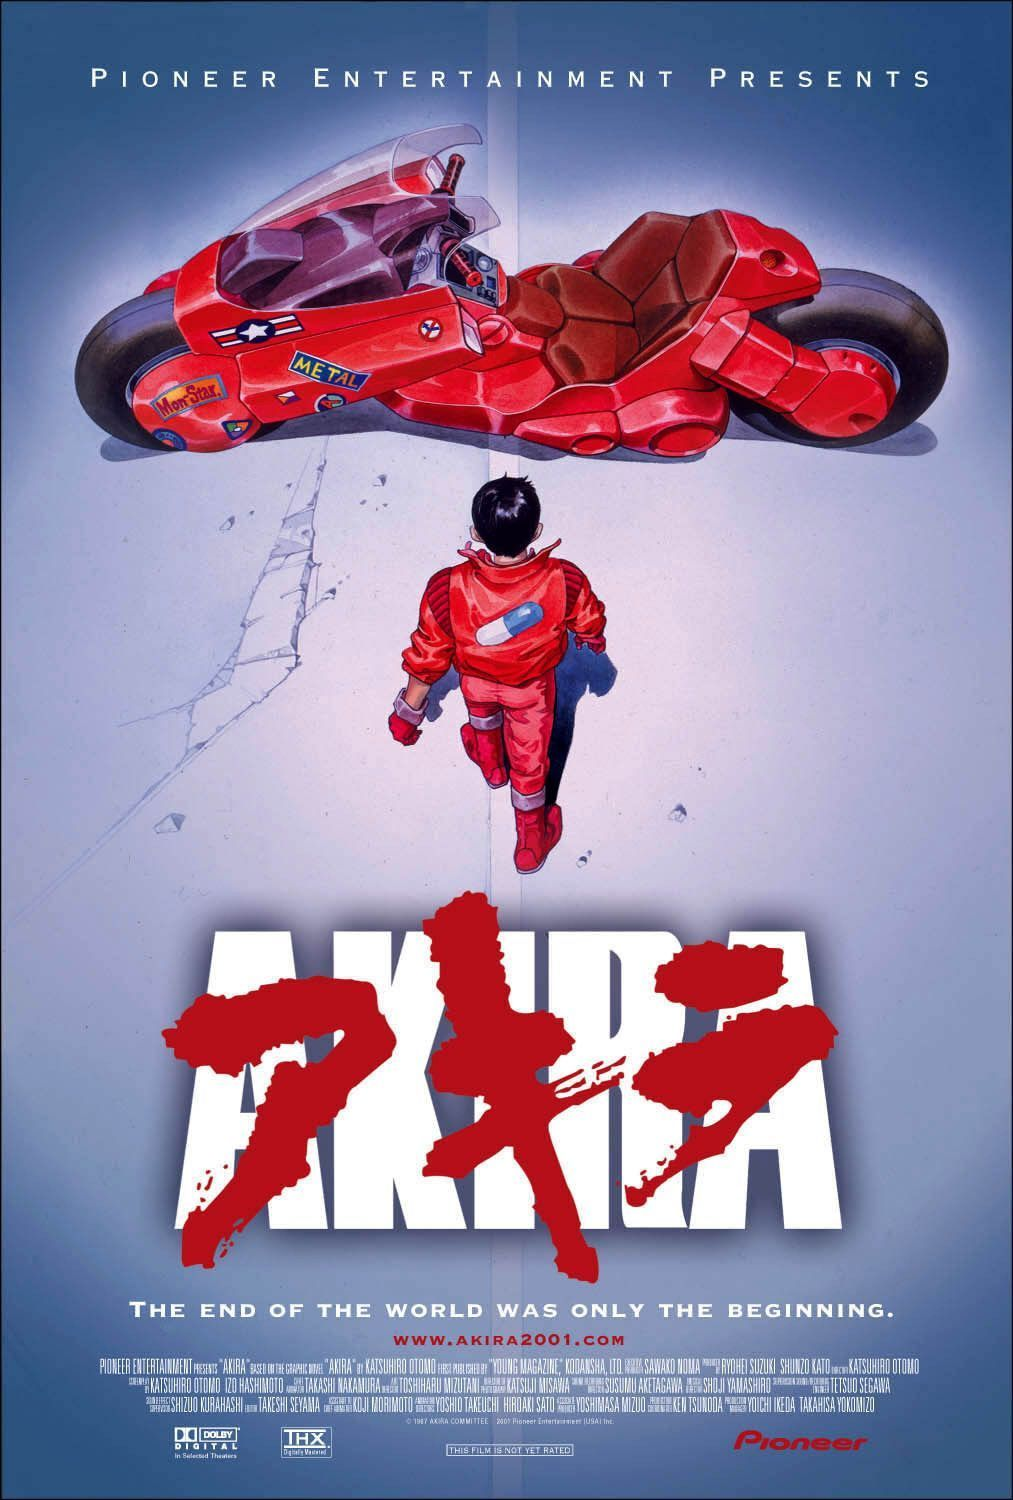 New Akira Anime series along with a new movie: